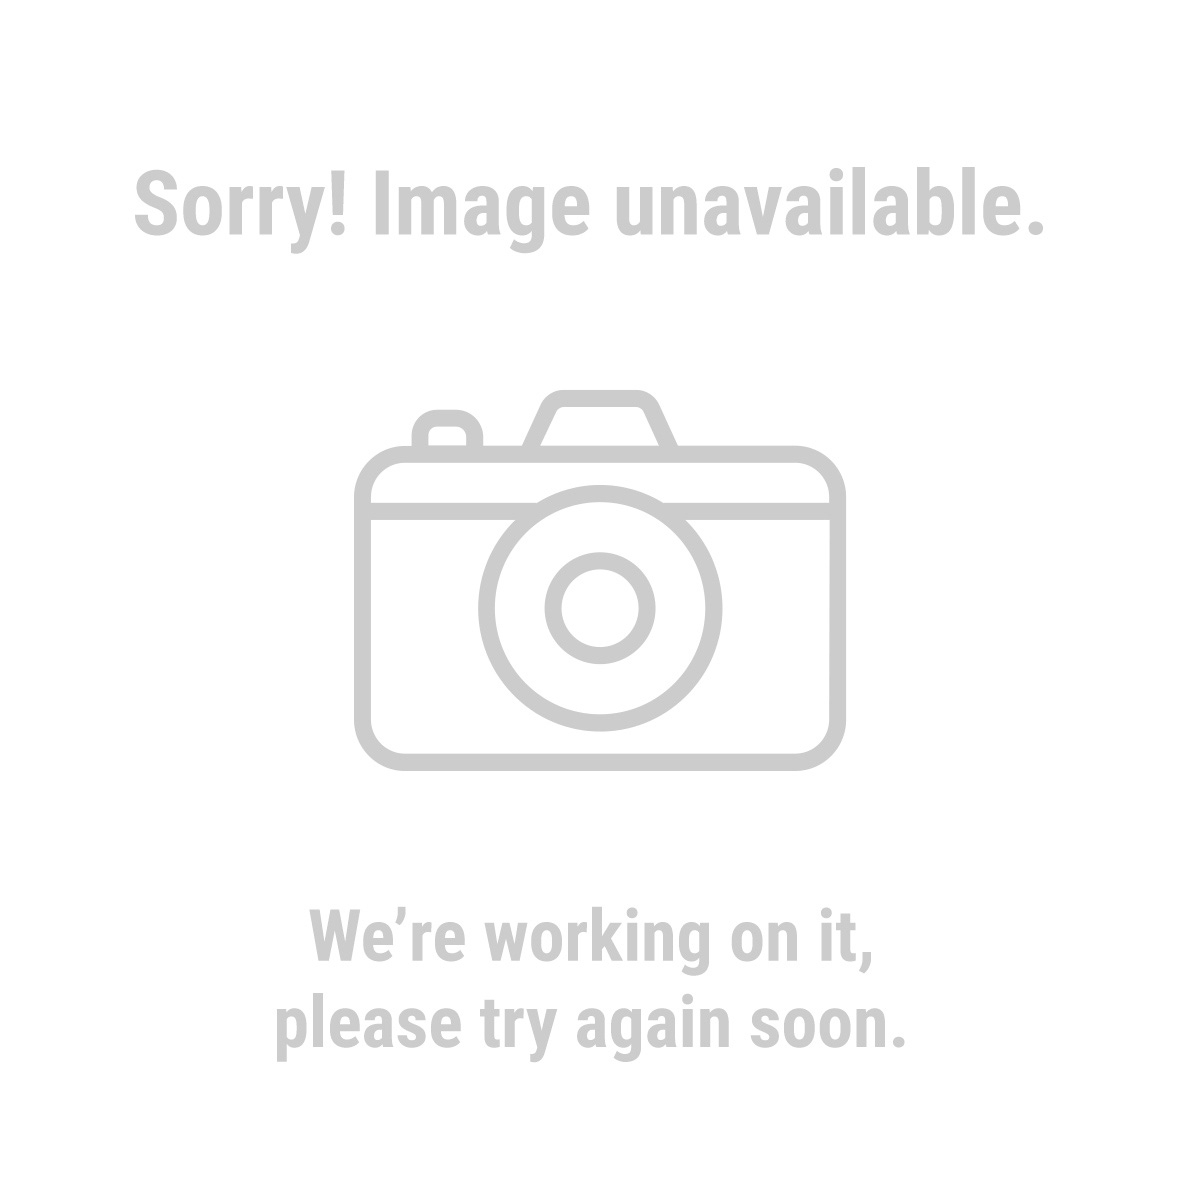 U.S. General Pro 61656 72 in. 18 Drawer Industrial Roller Cabinet